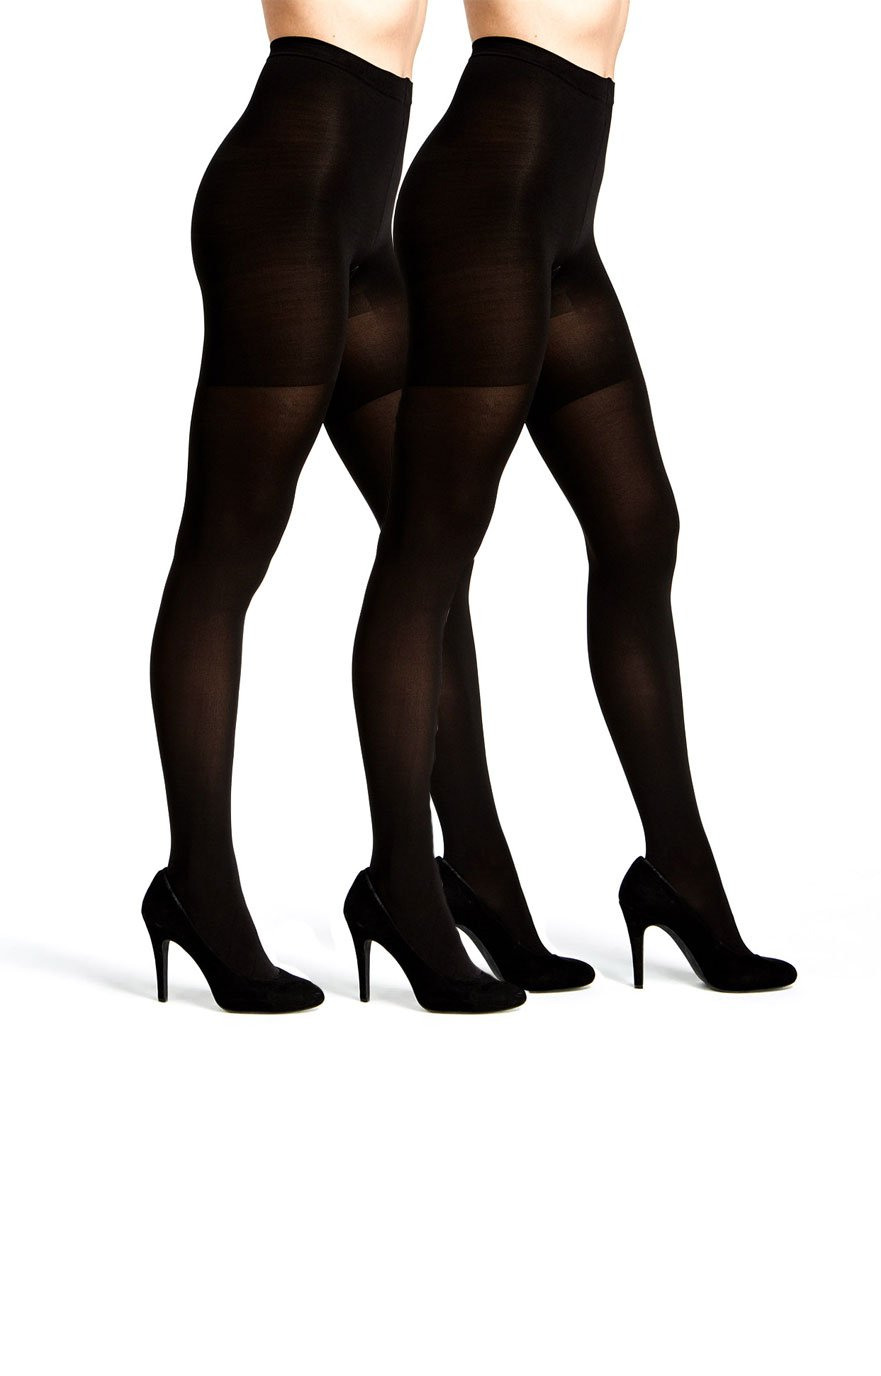 Womens Control Top Opaque Tights 2 Pack Black available in Regular and Plus size (M/L, 2 PK Black)